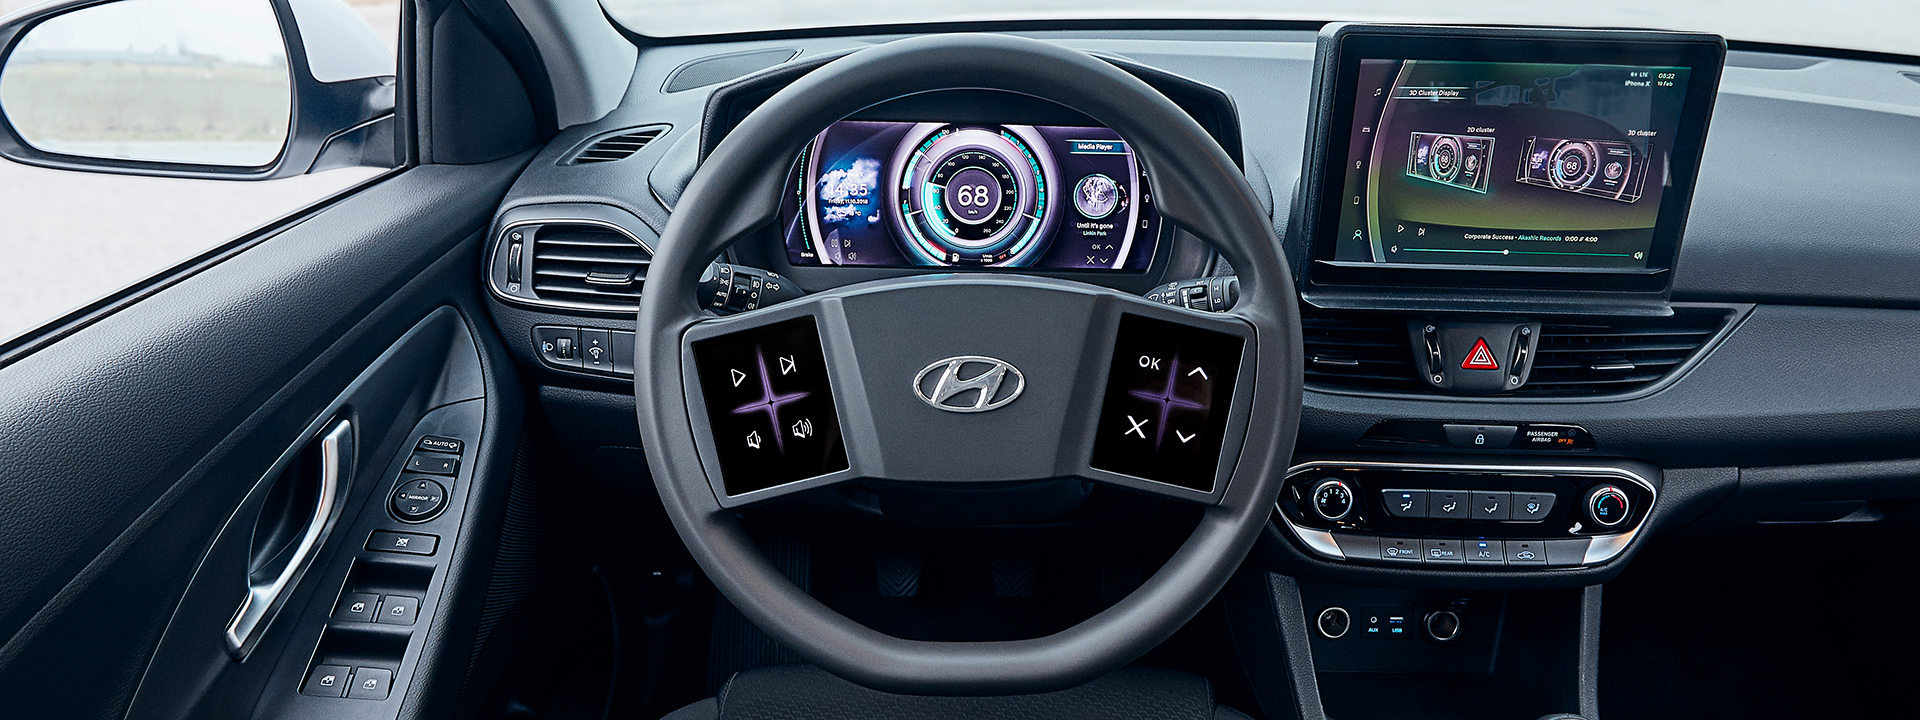 Hyundai Offers Sneak Peek of Virtual Cockpit Technology